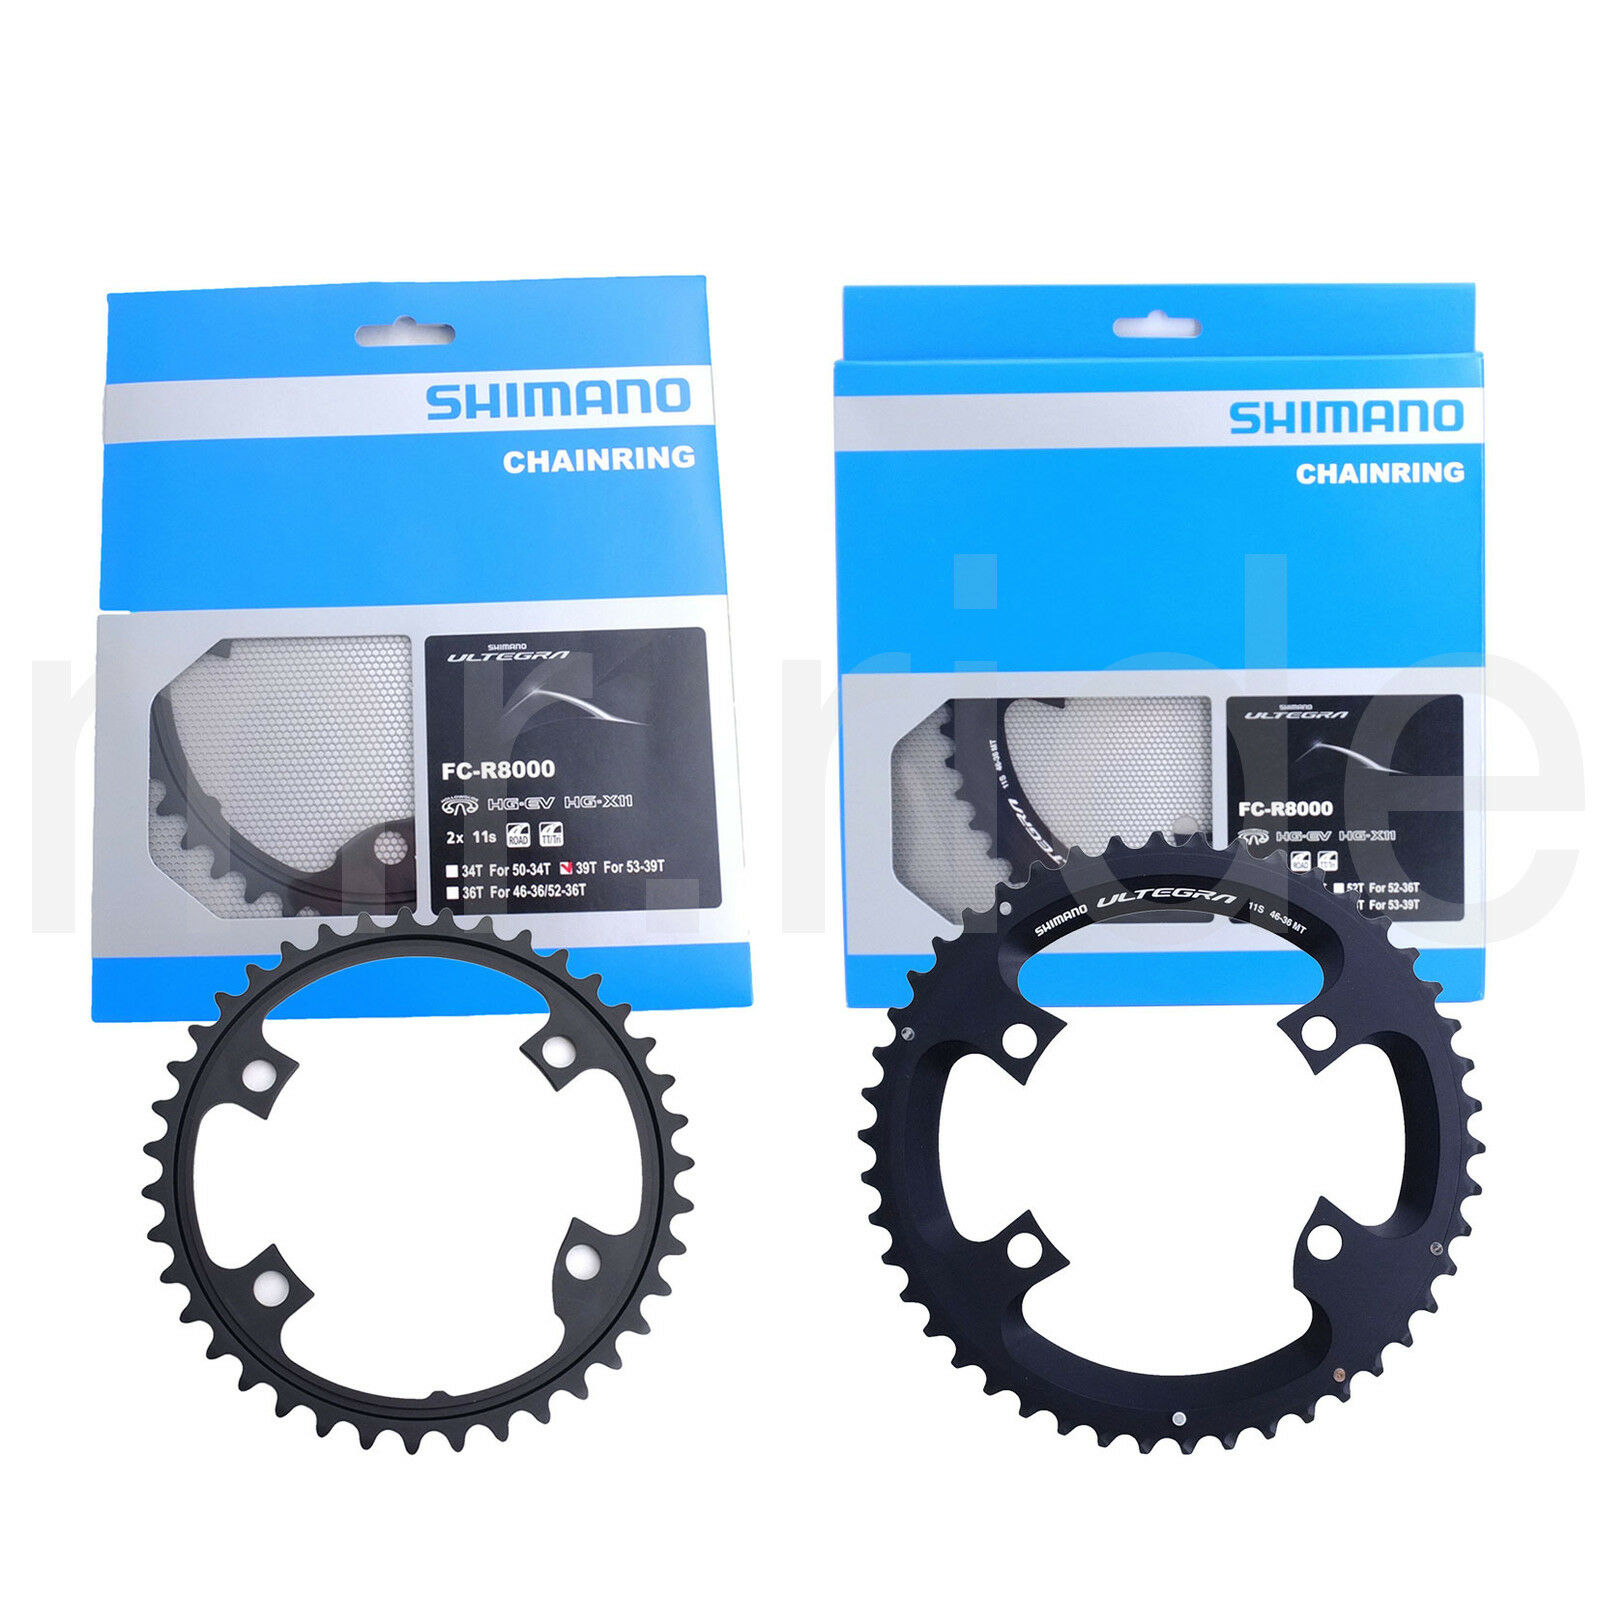 Shimano Ultegra FC-R8000 110mm BCD 4 Arm Chainrings - 53T + 39T Road Bike